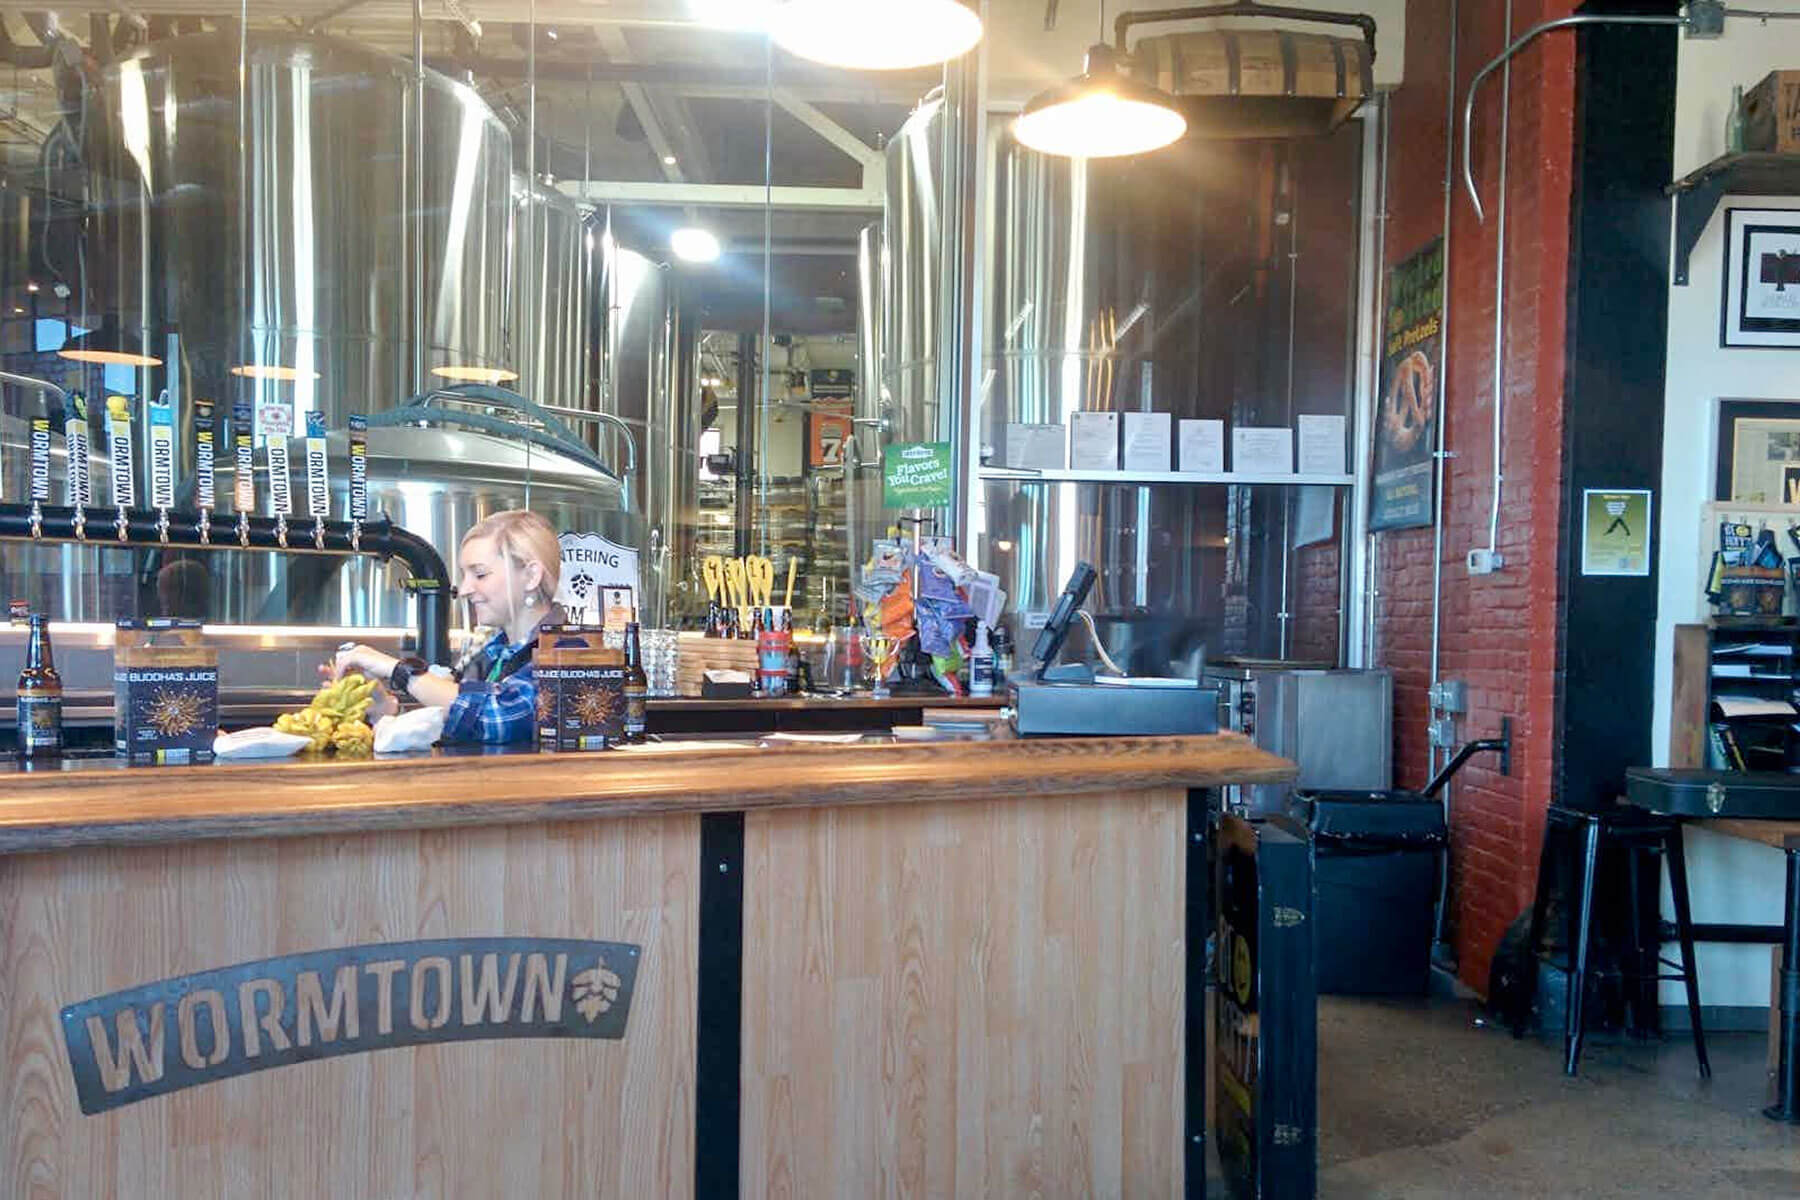 Inside the taproom at Wormtown Brewery in Worcester, Massachusetts